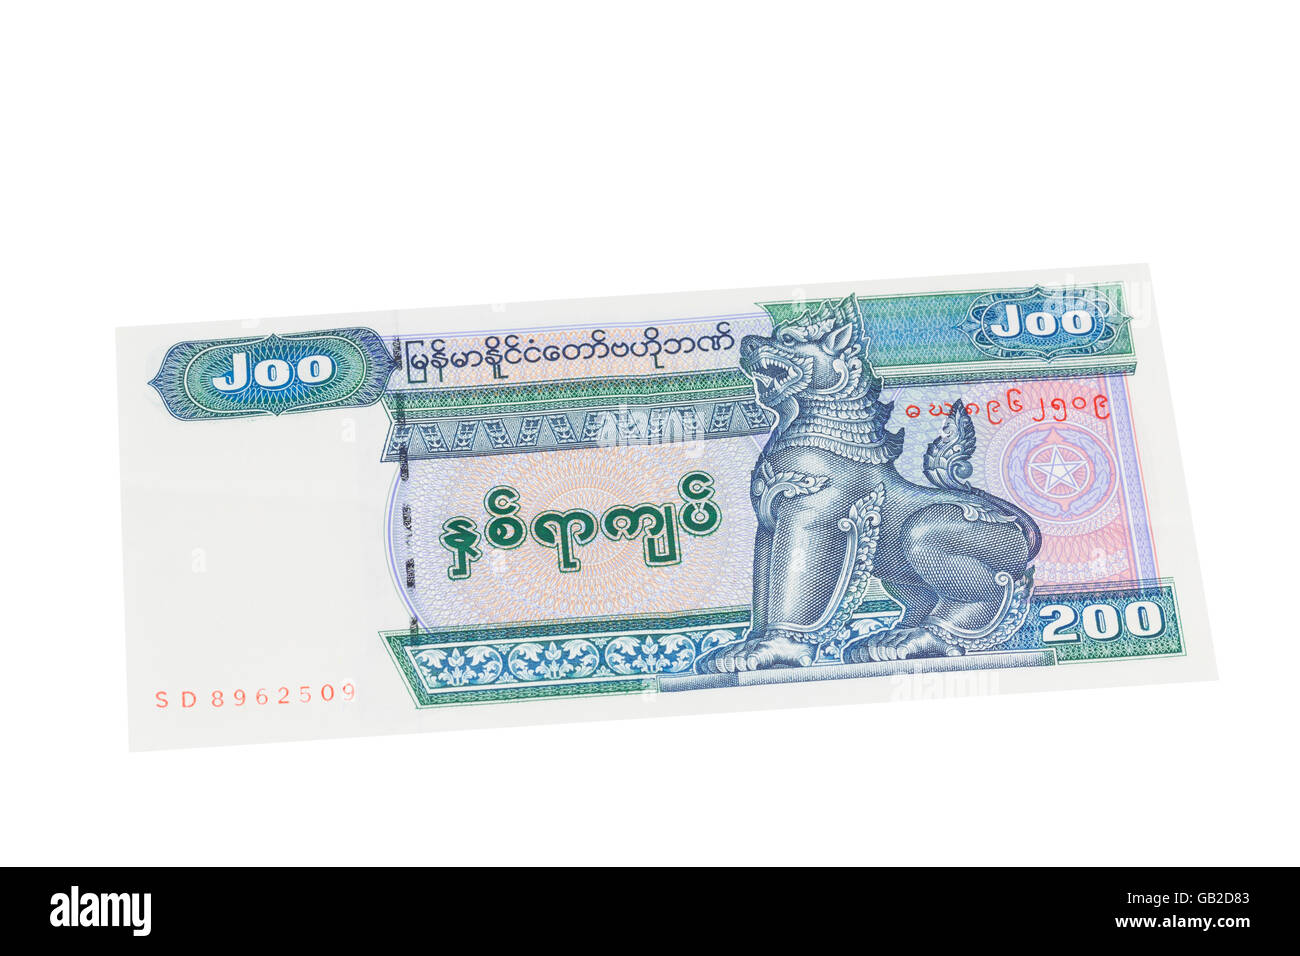 Myanmar two hundred Kyat note on a white background - Stock Image